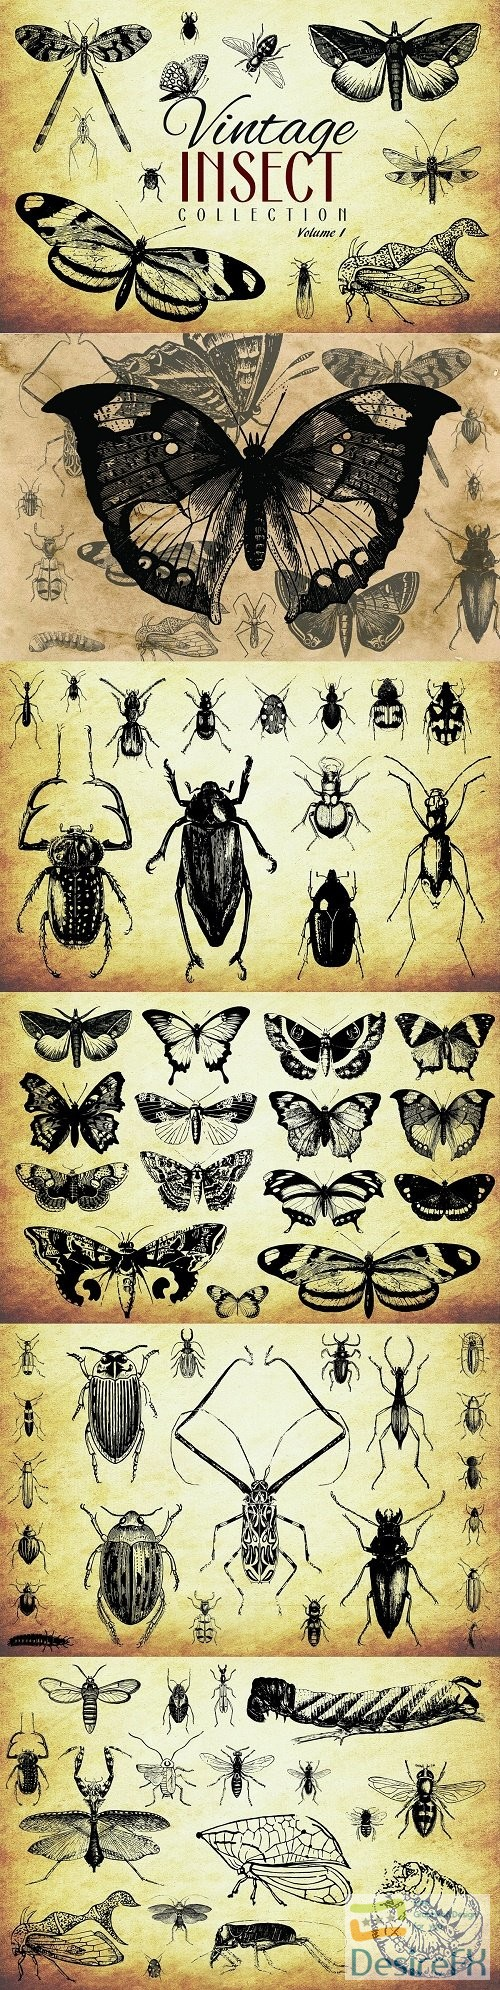 stock-vectors - 200 Vintage Insect Vector Graphics - 3450238